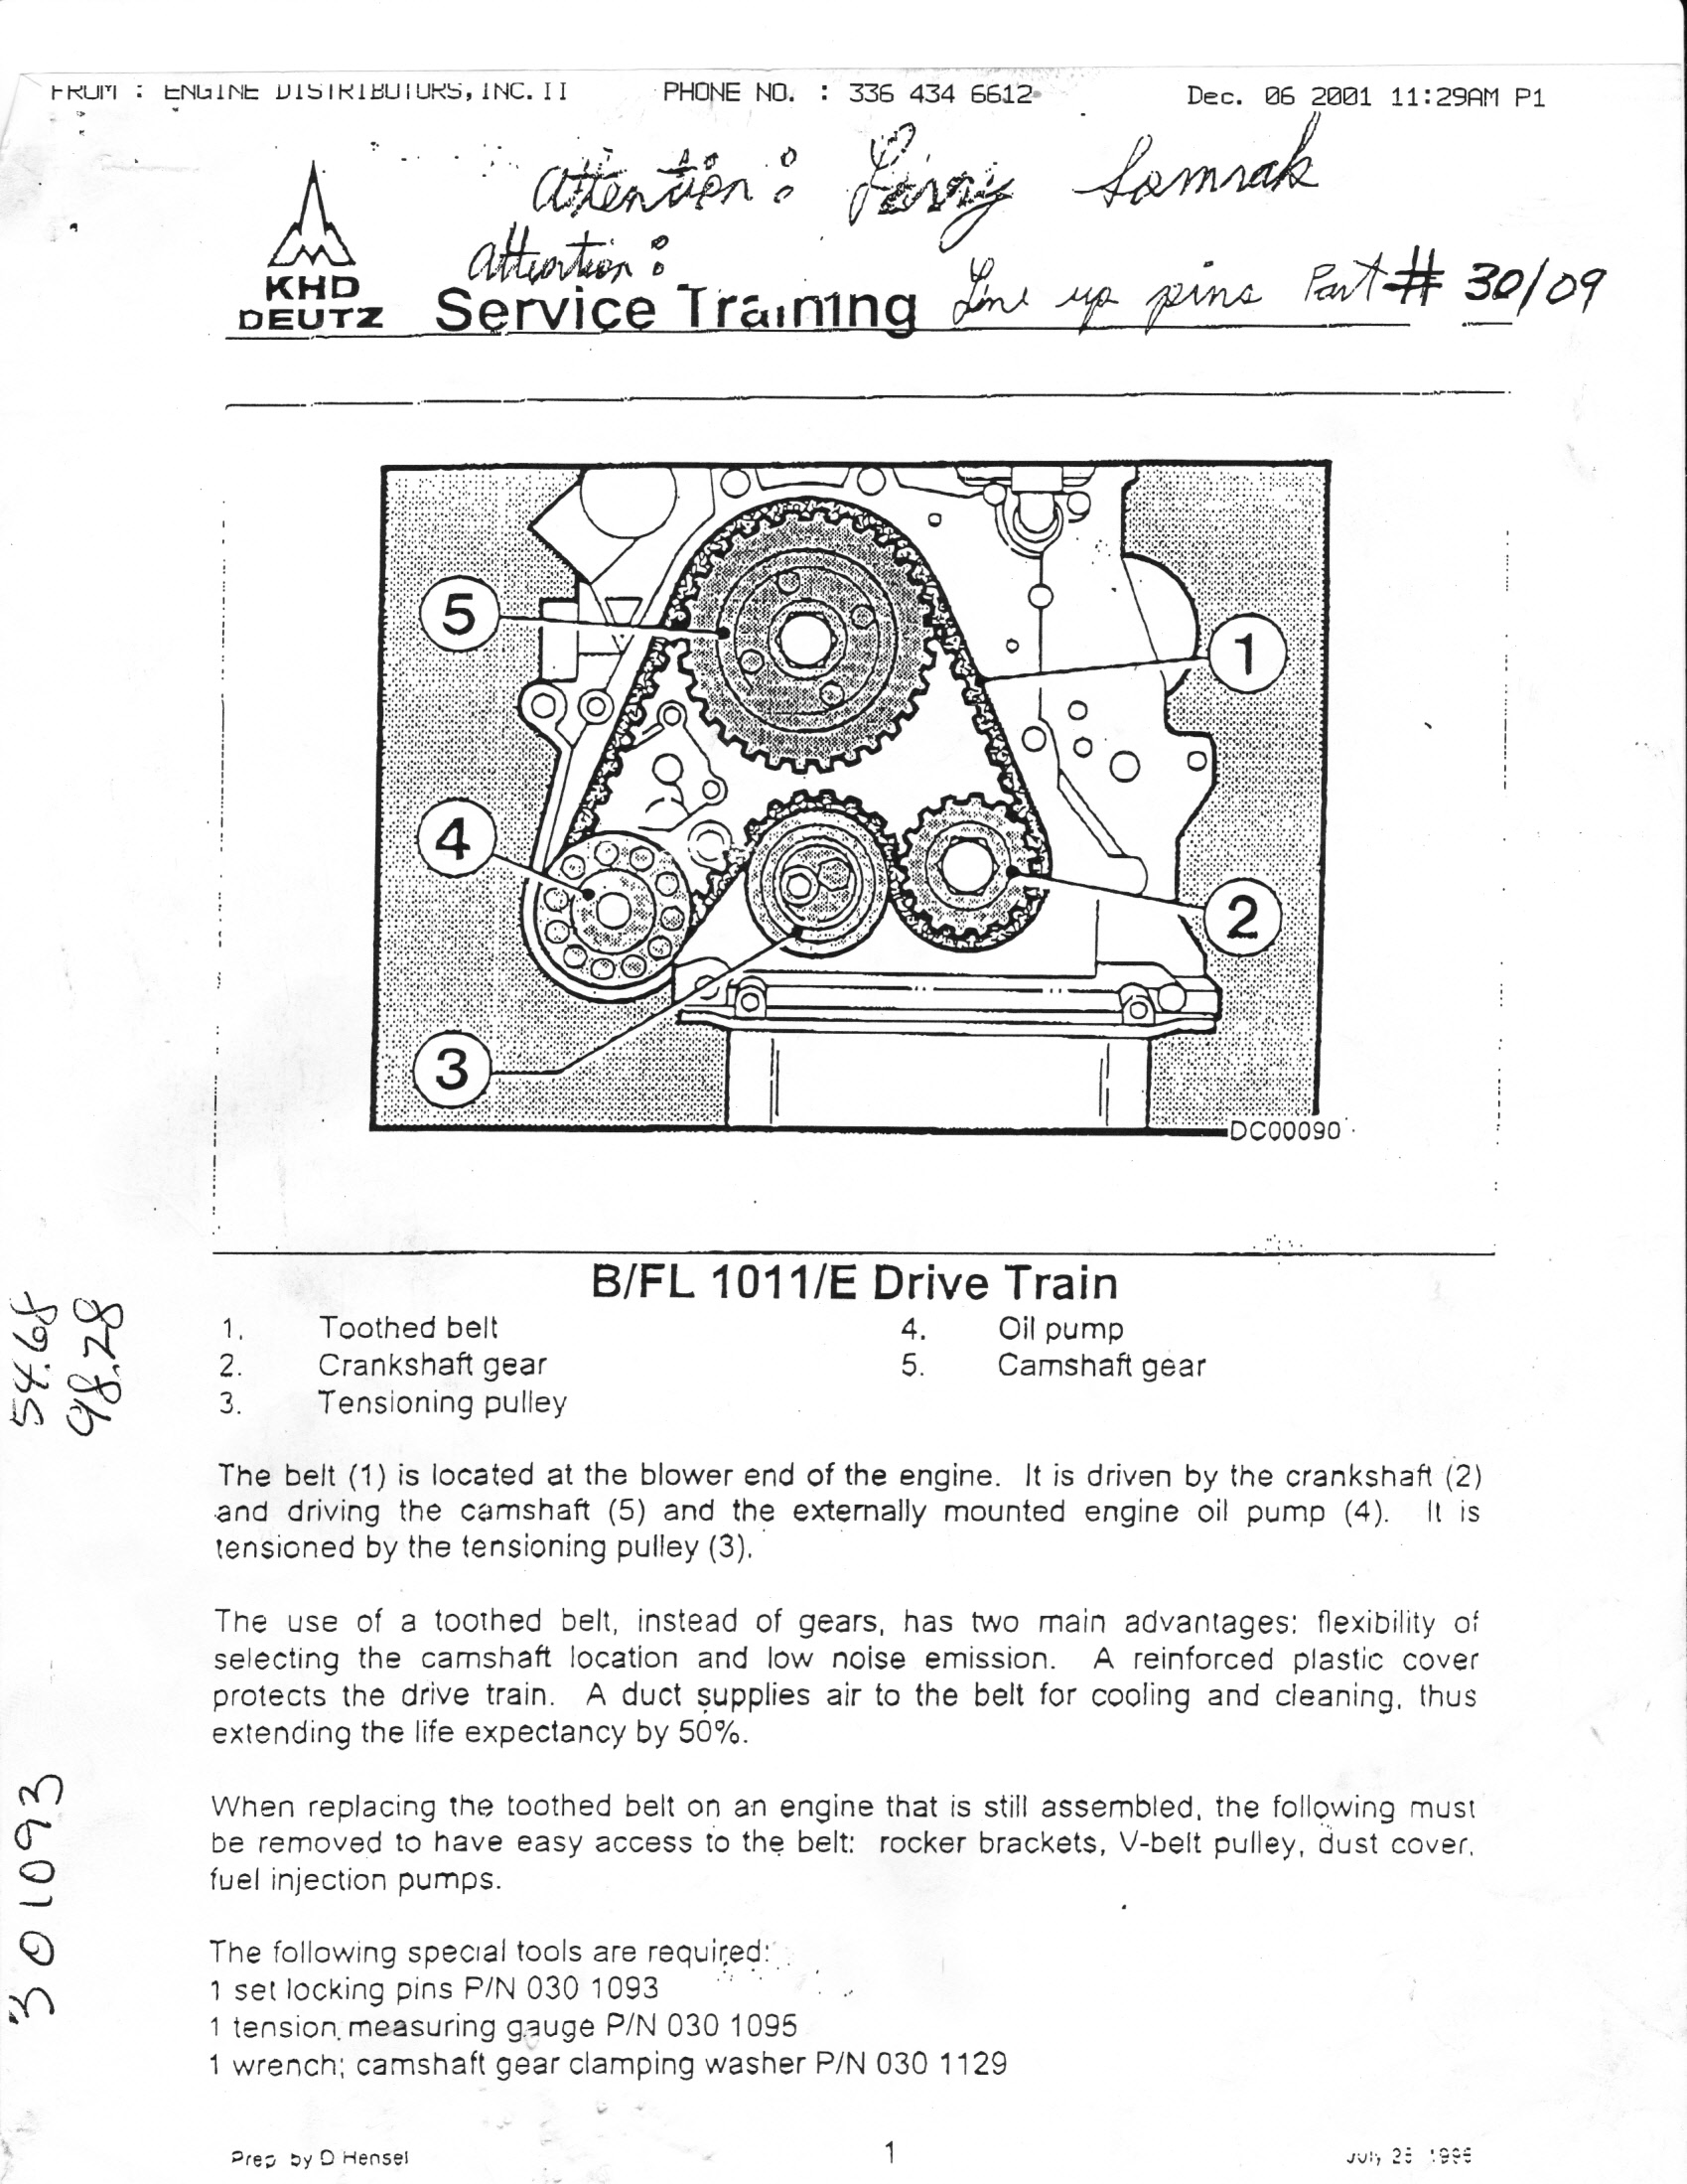 i need a workshop manual for a deutz f3l1011f motor or at least the rh justanswer com deutz f4l1011 service manual deutz f3l 1011 service manual download